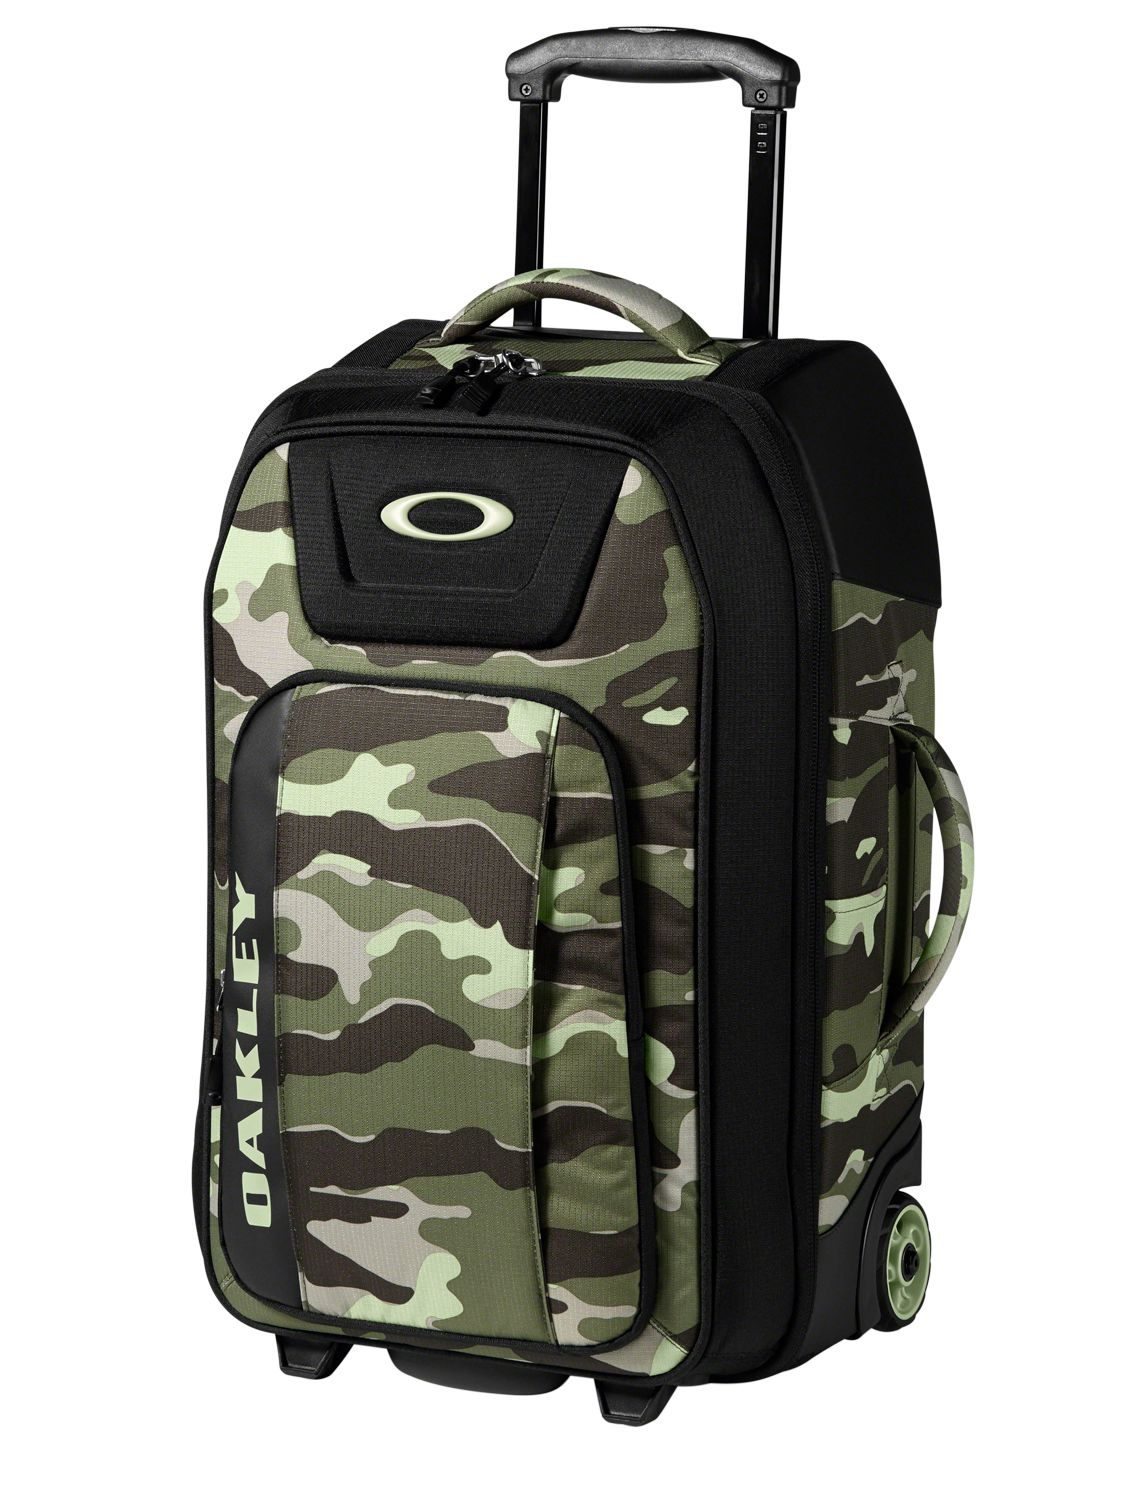 Oakley Travel Bag With Wheels